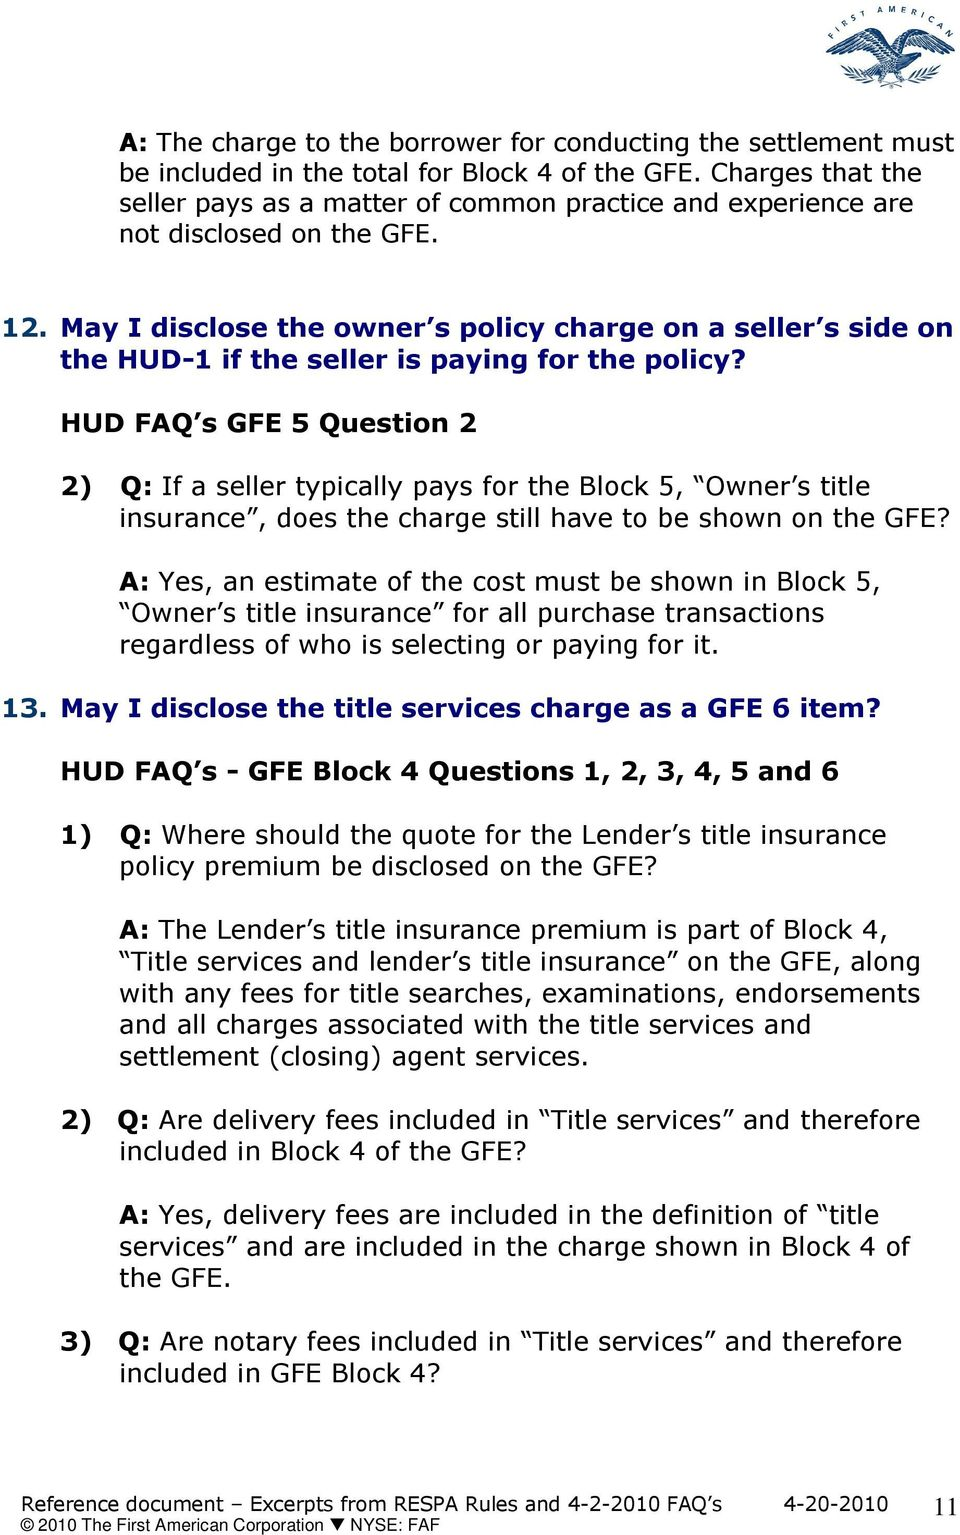 May I disclose the owner s policy charge on a seller s side on the HUD-1 if the seller is paying for the policy?